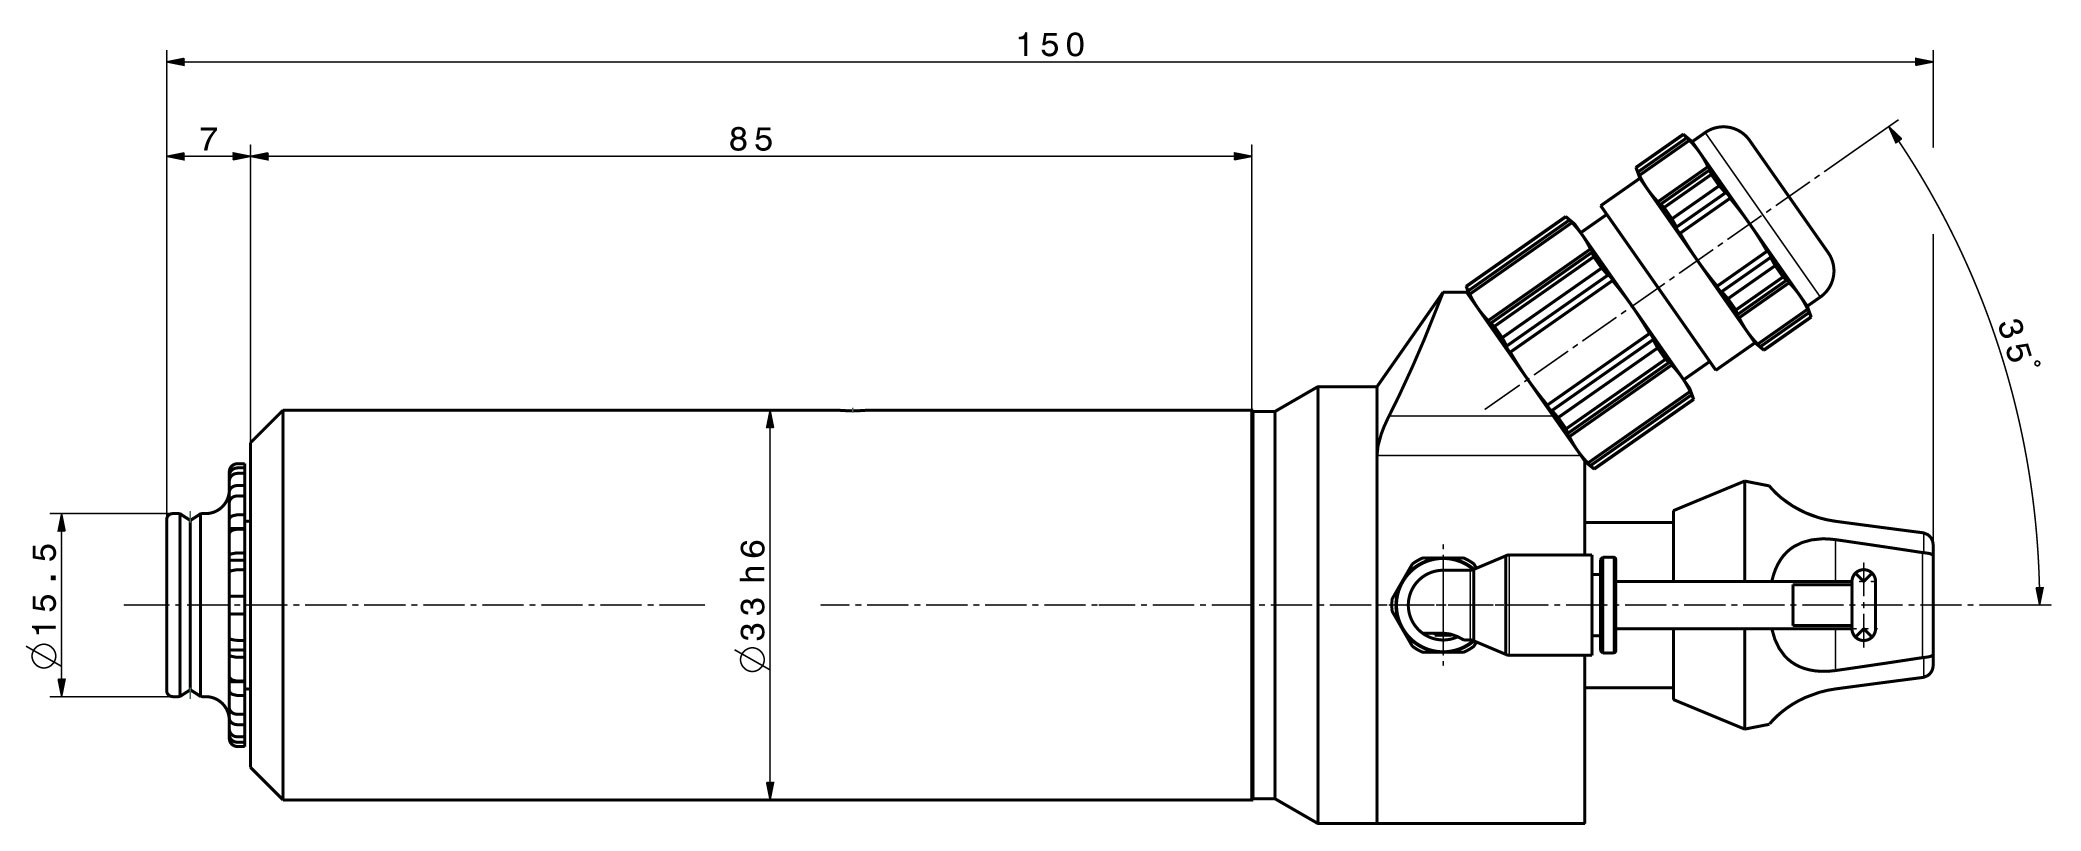 4025 DC-S 'sealing air' dimensions